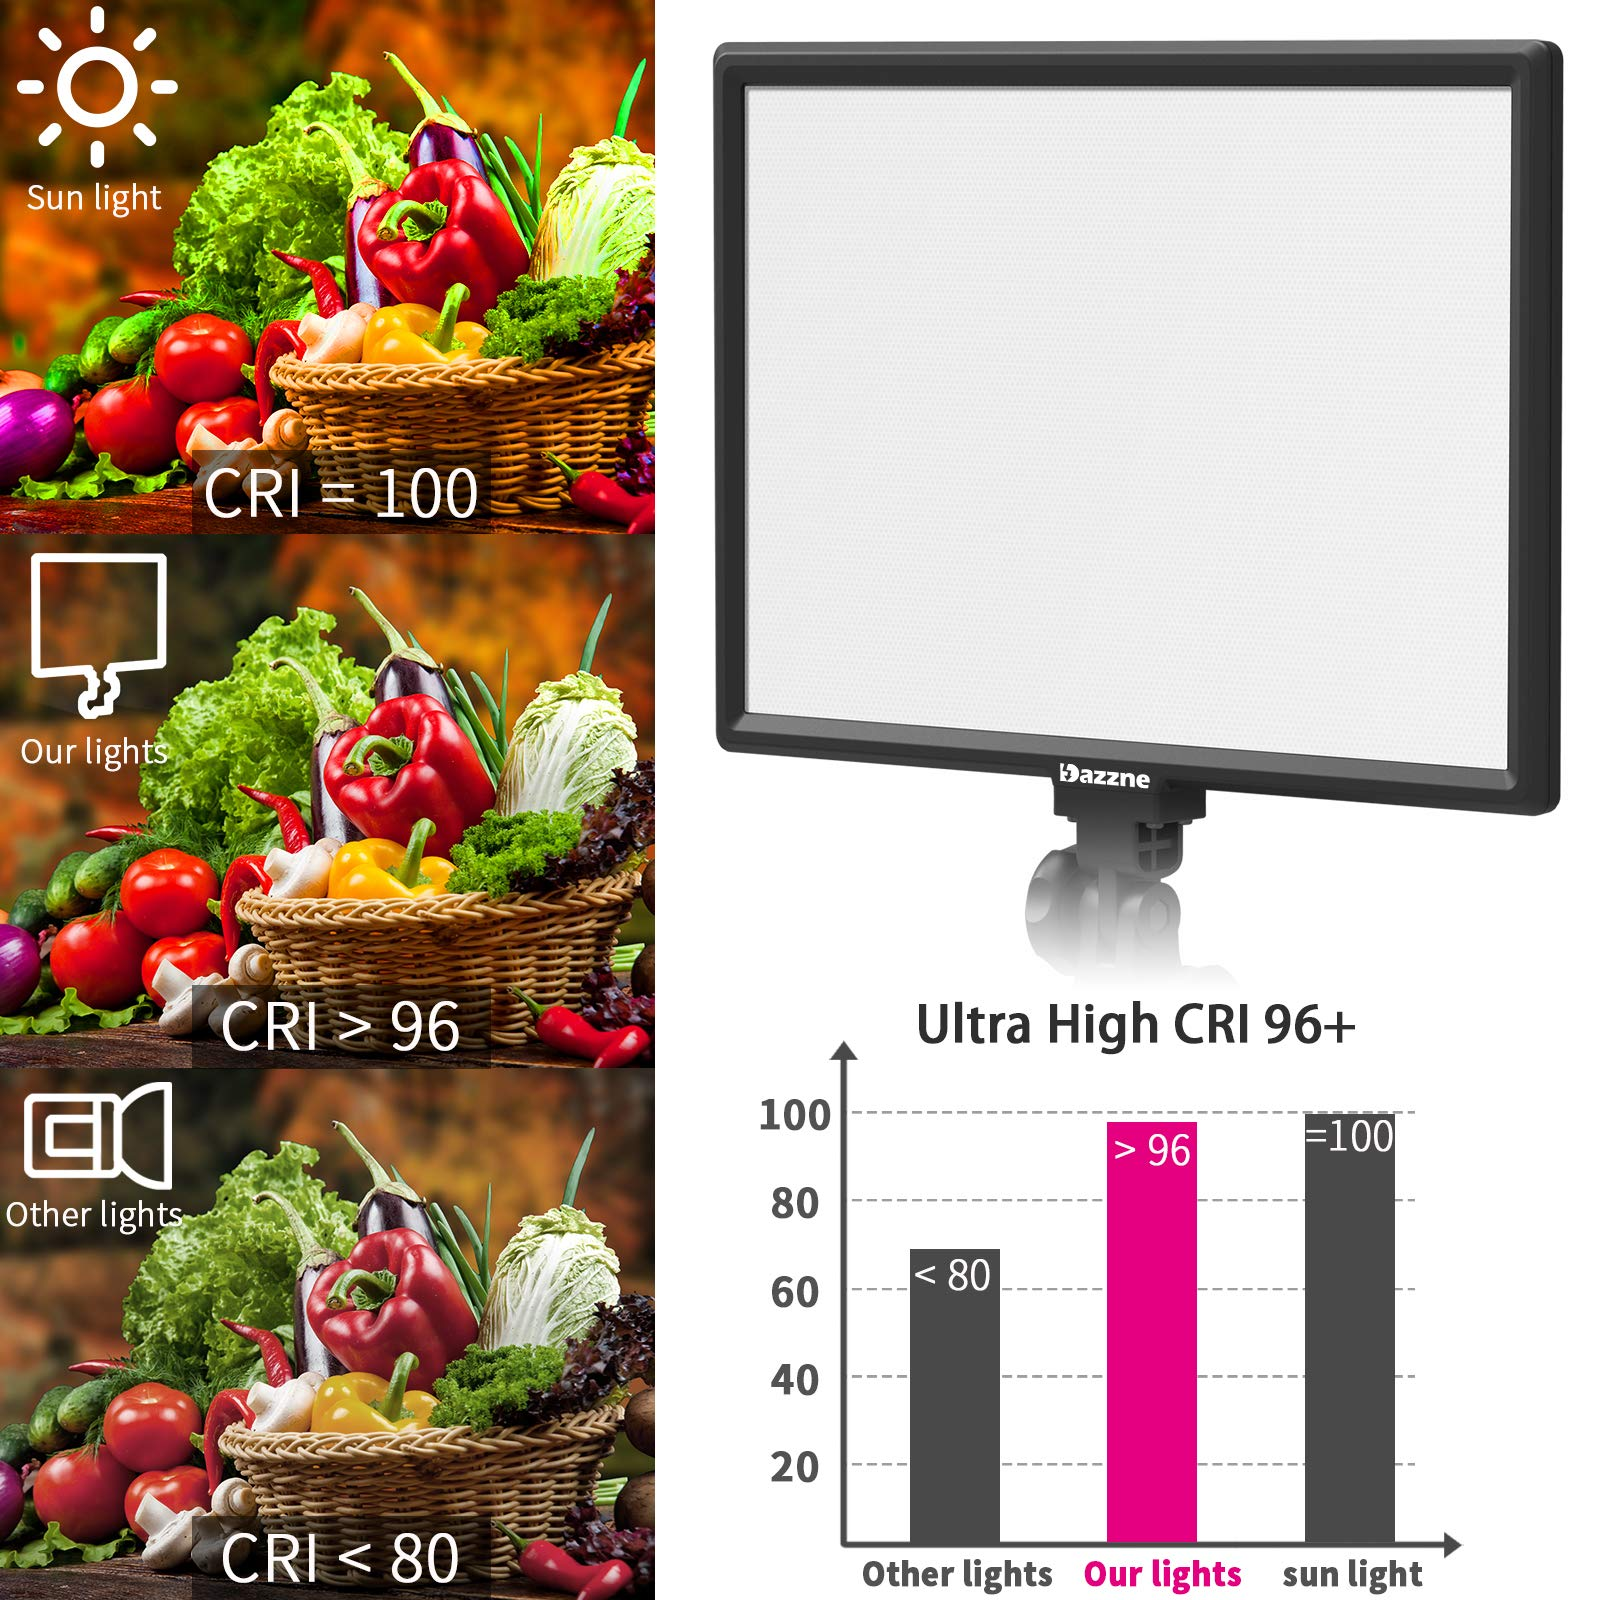 Bi-Color LED Video Light Stand Lighting Kit 3 Pack 15.4'' Large Panel 3000K-5800K 45W 4800LM Dimmable 1-100% Brightness Soft Light for YouTube Game Video Shooting Live Stream Photography Lighting by Dazzne (Image #6)